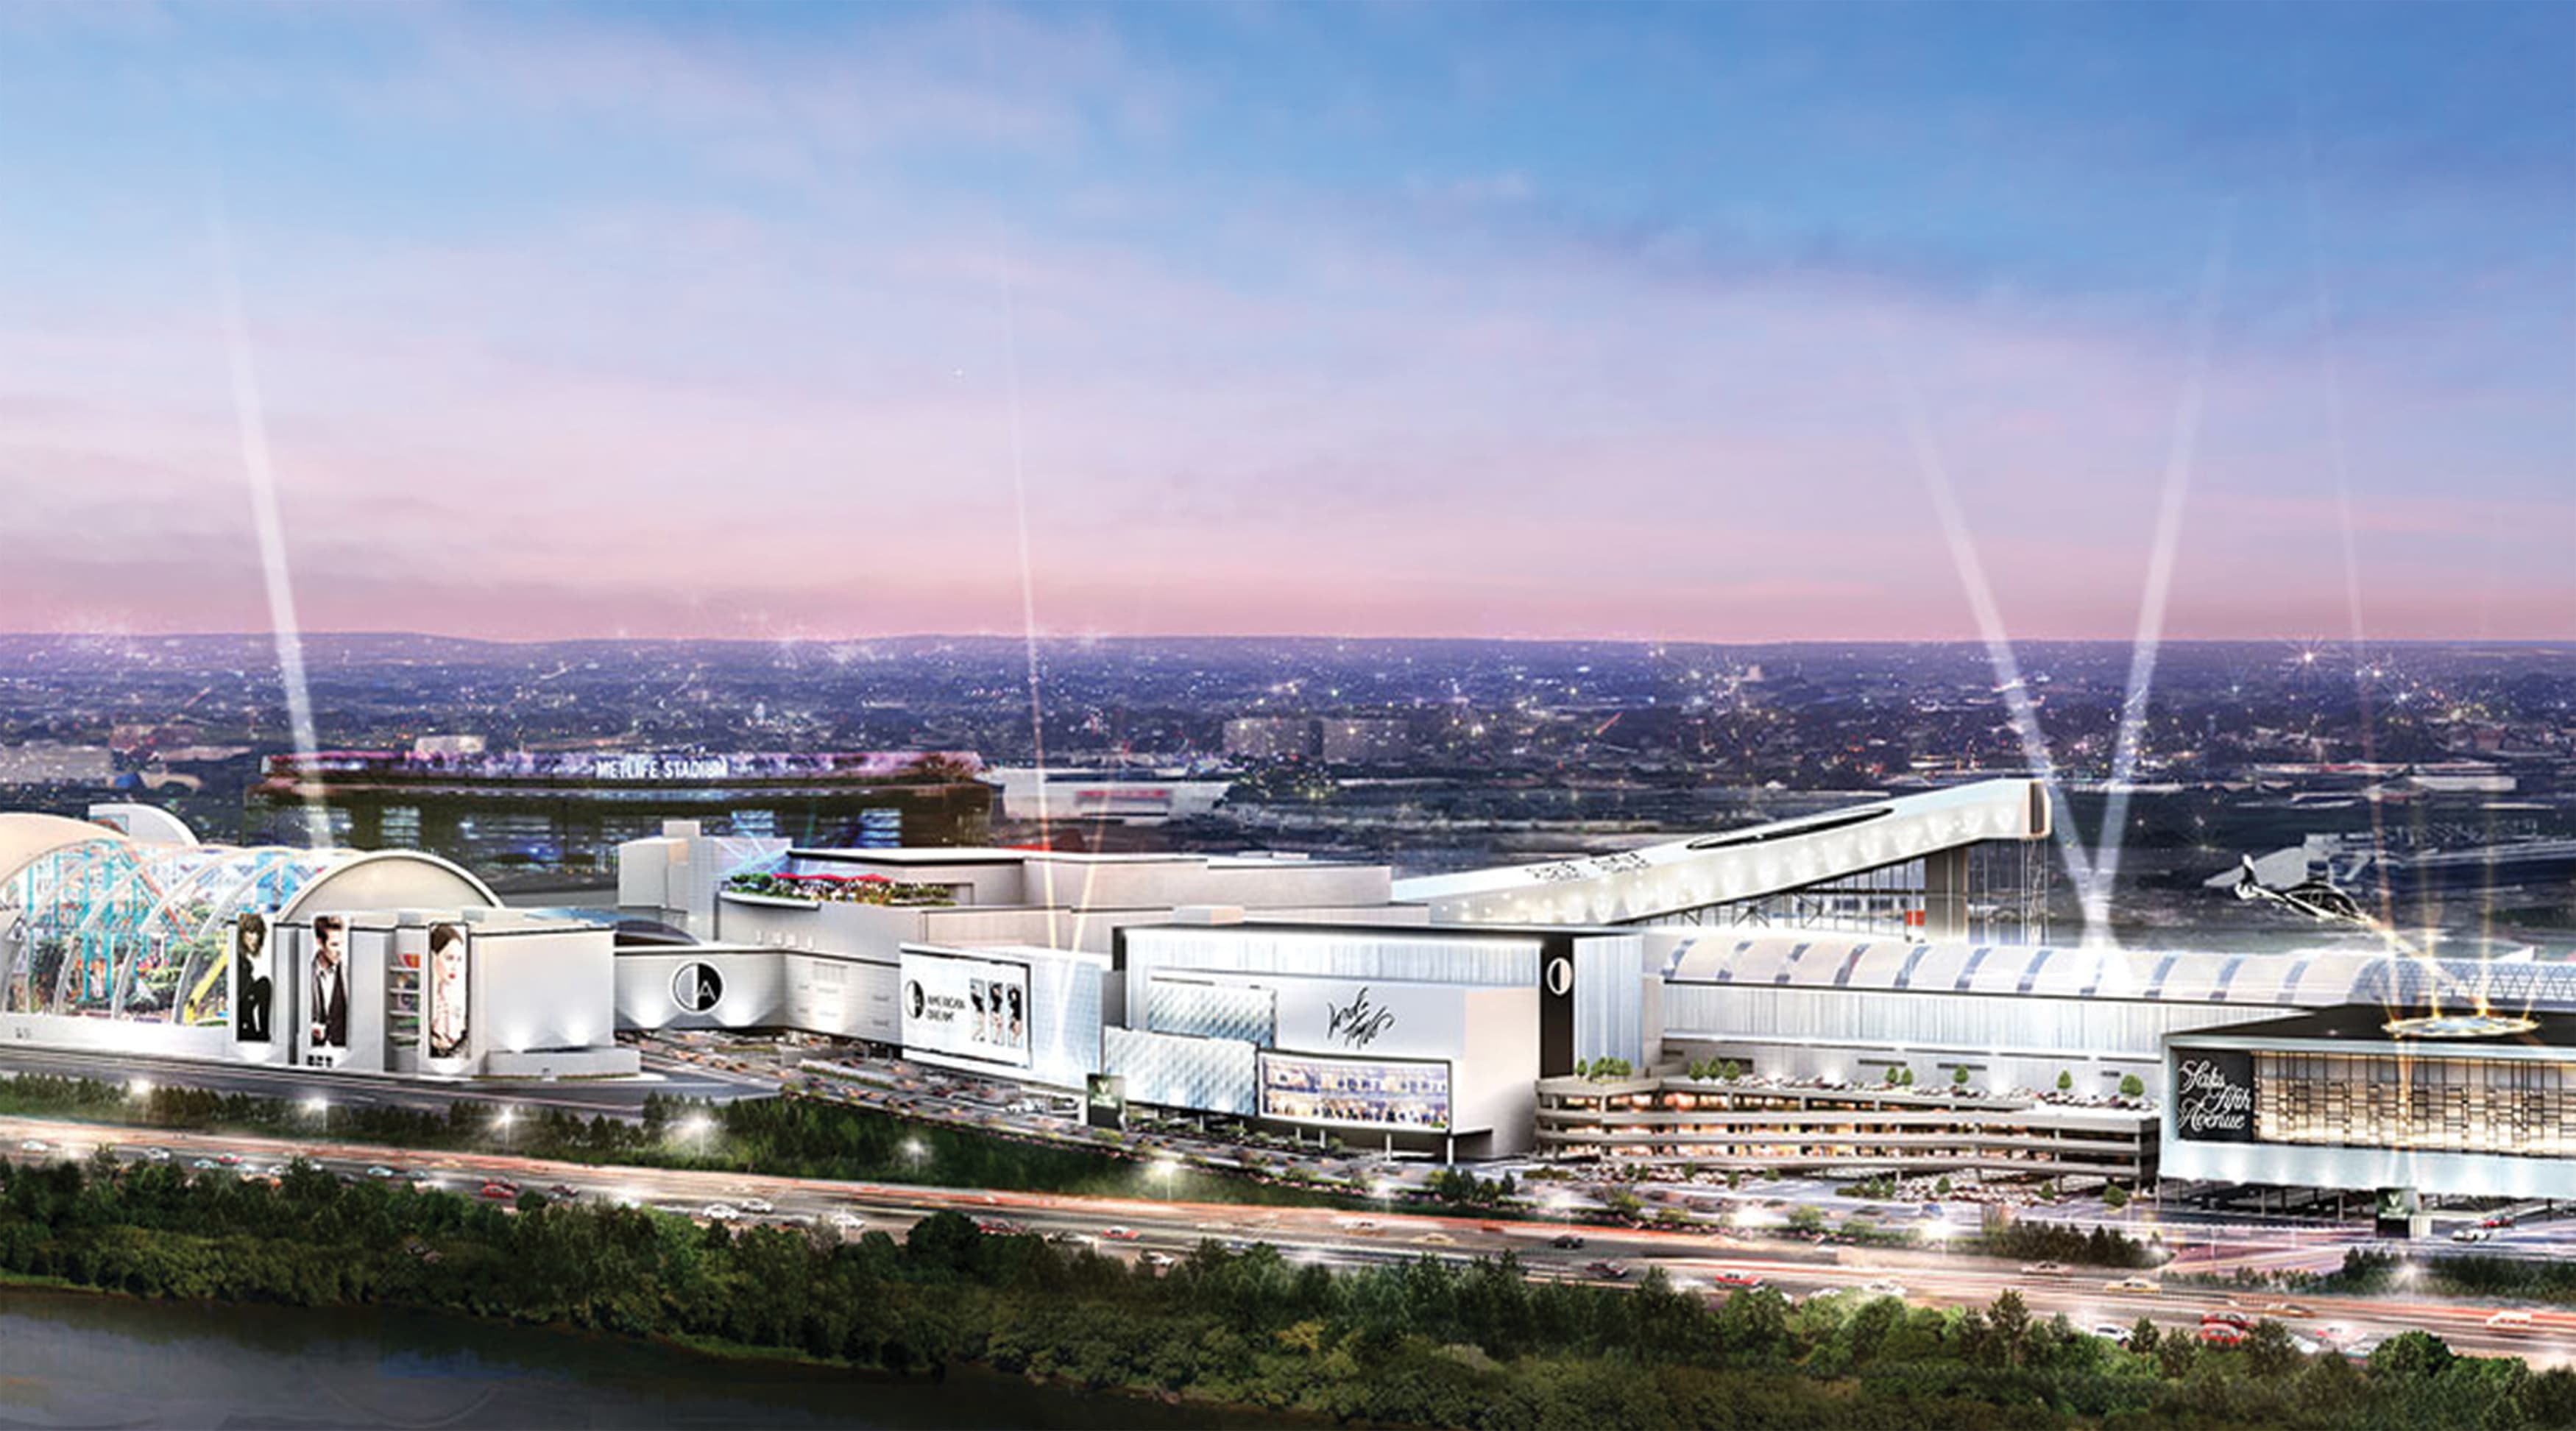 American Dream Retail Project Design in East Rutherford, New Jersey. Aerial Architectural Rendering